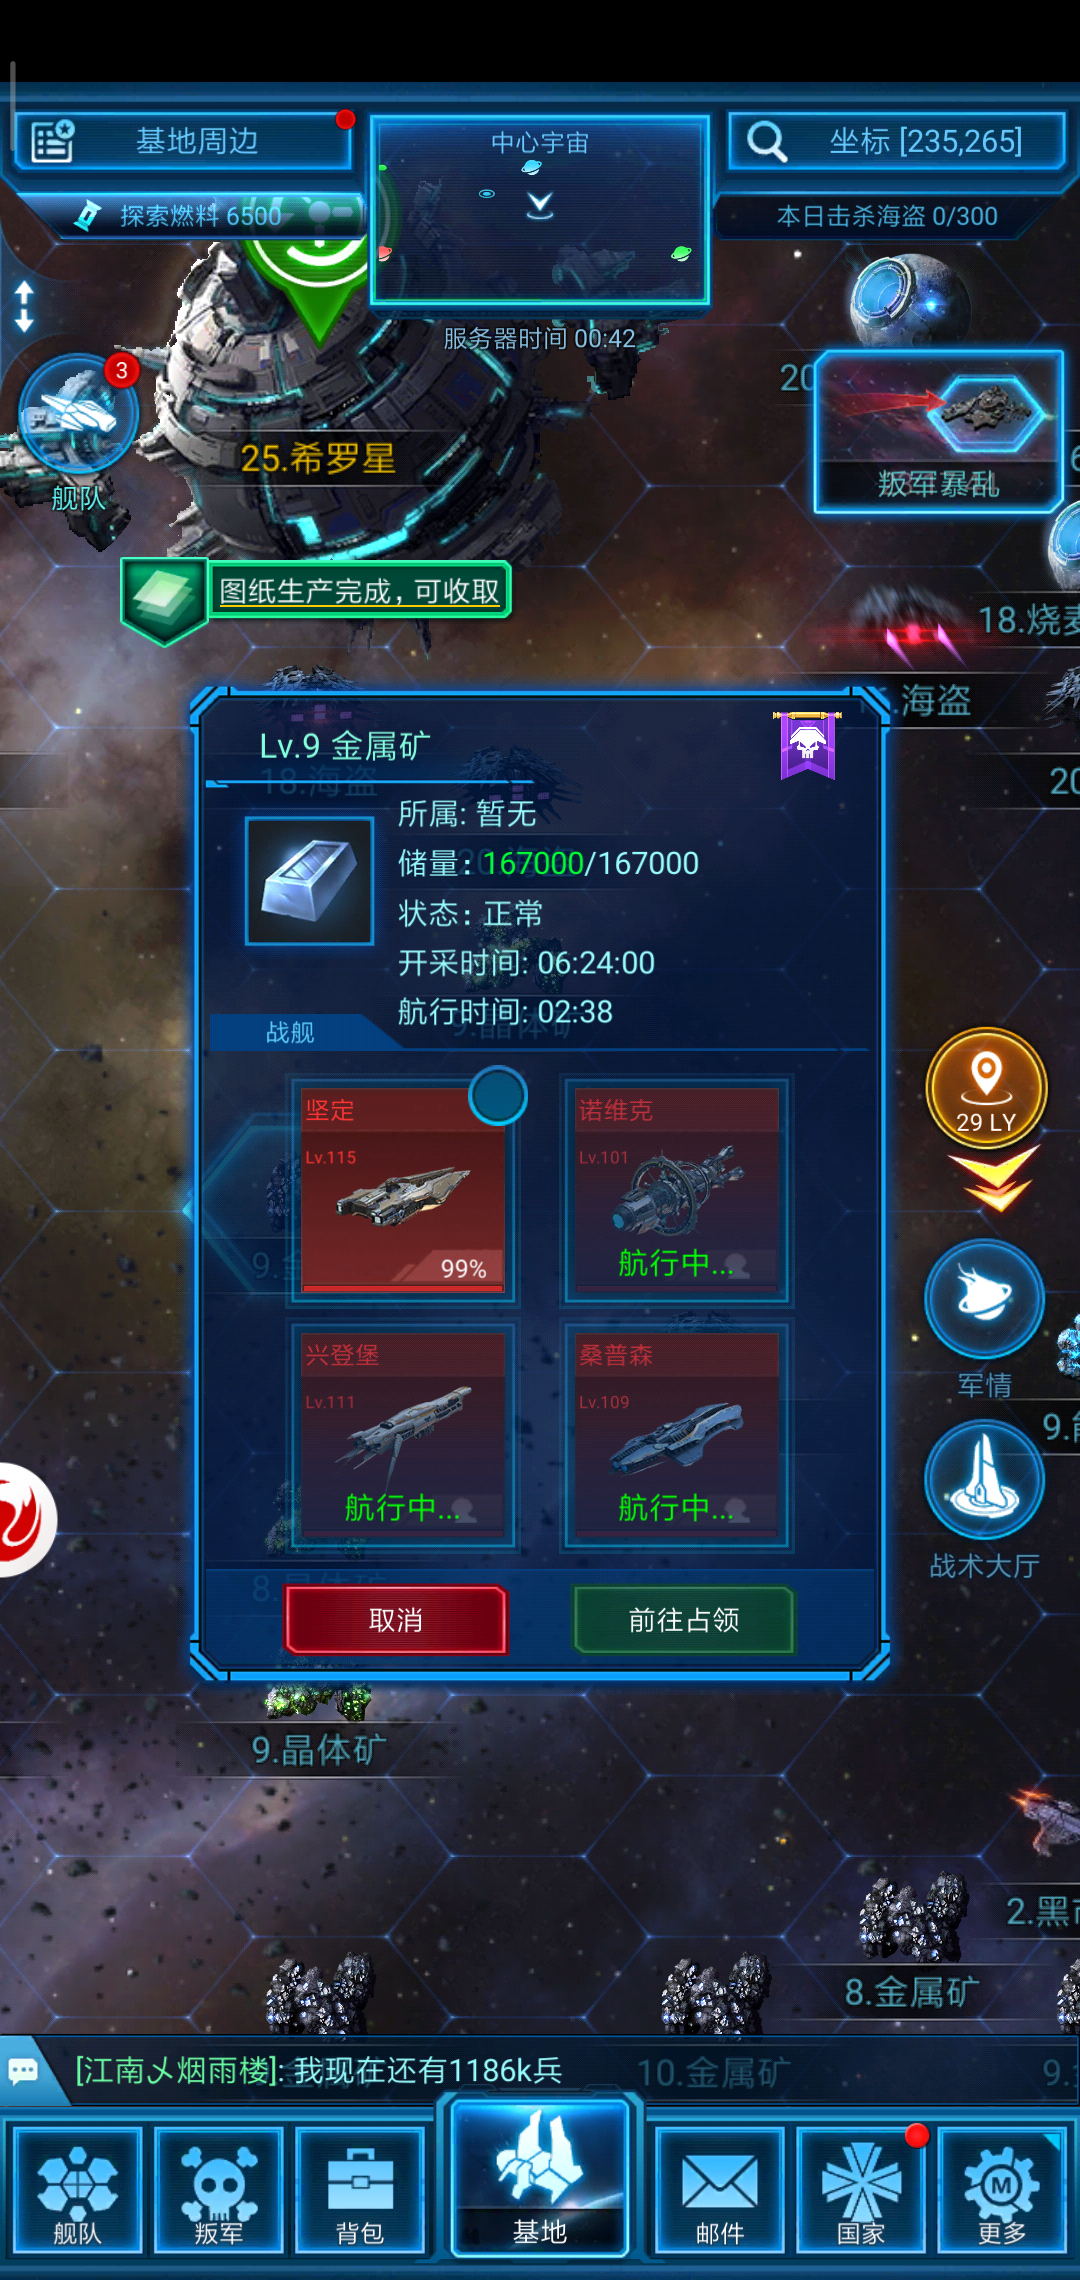 Screenshot_2019-09-22-00-42-16-269_com.jedigames.p16s.luobo.png